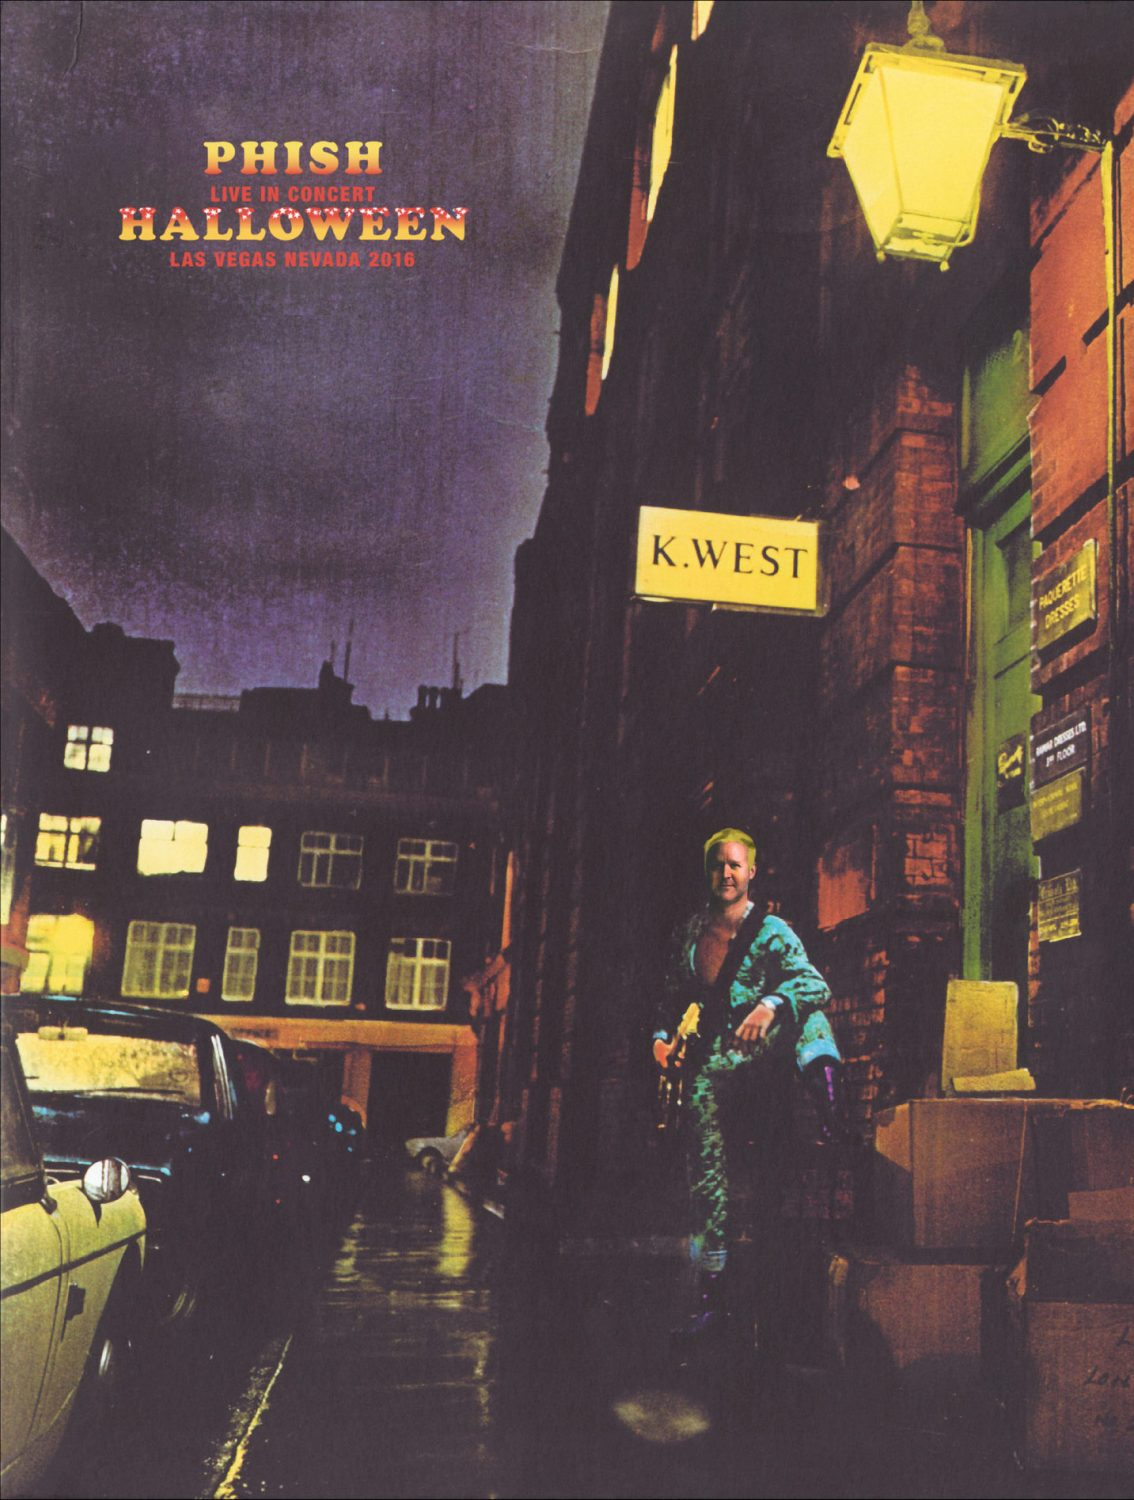 Watch Phish Cover David Bowie's Complete 'Ziggy Stardust' Album as a Halloween Surprise